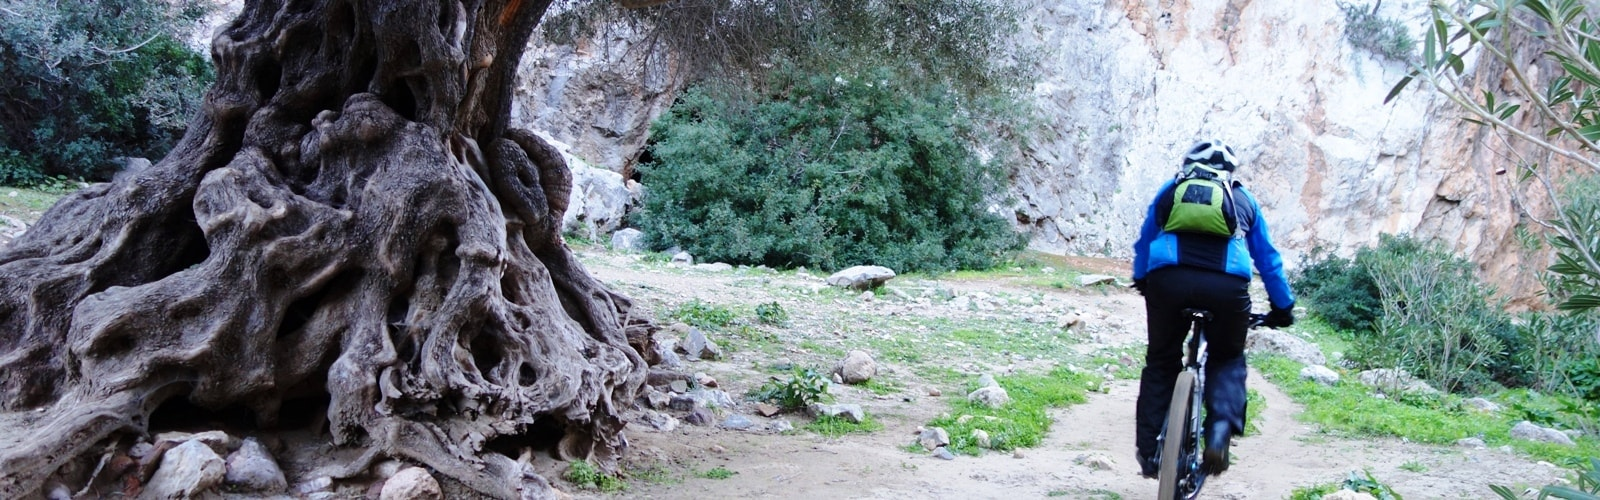 very old olive tree and cyclists